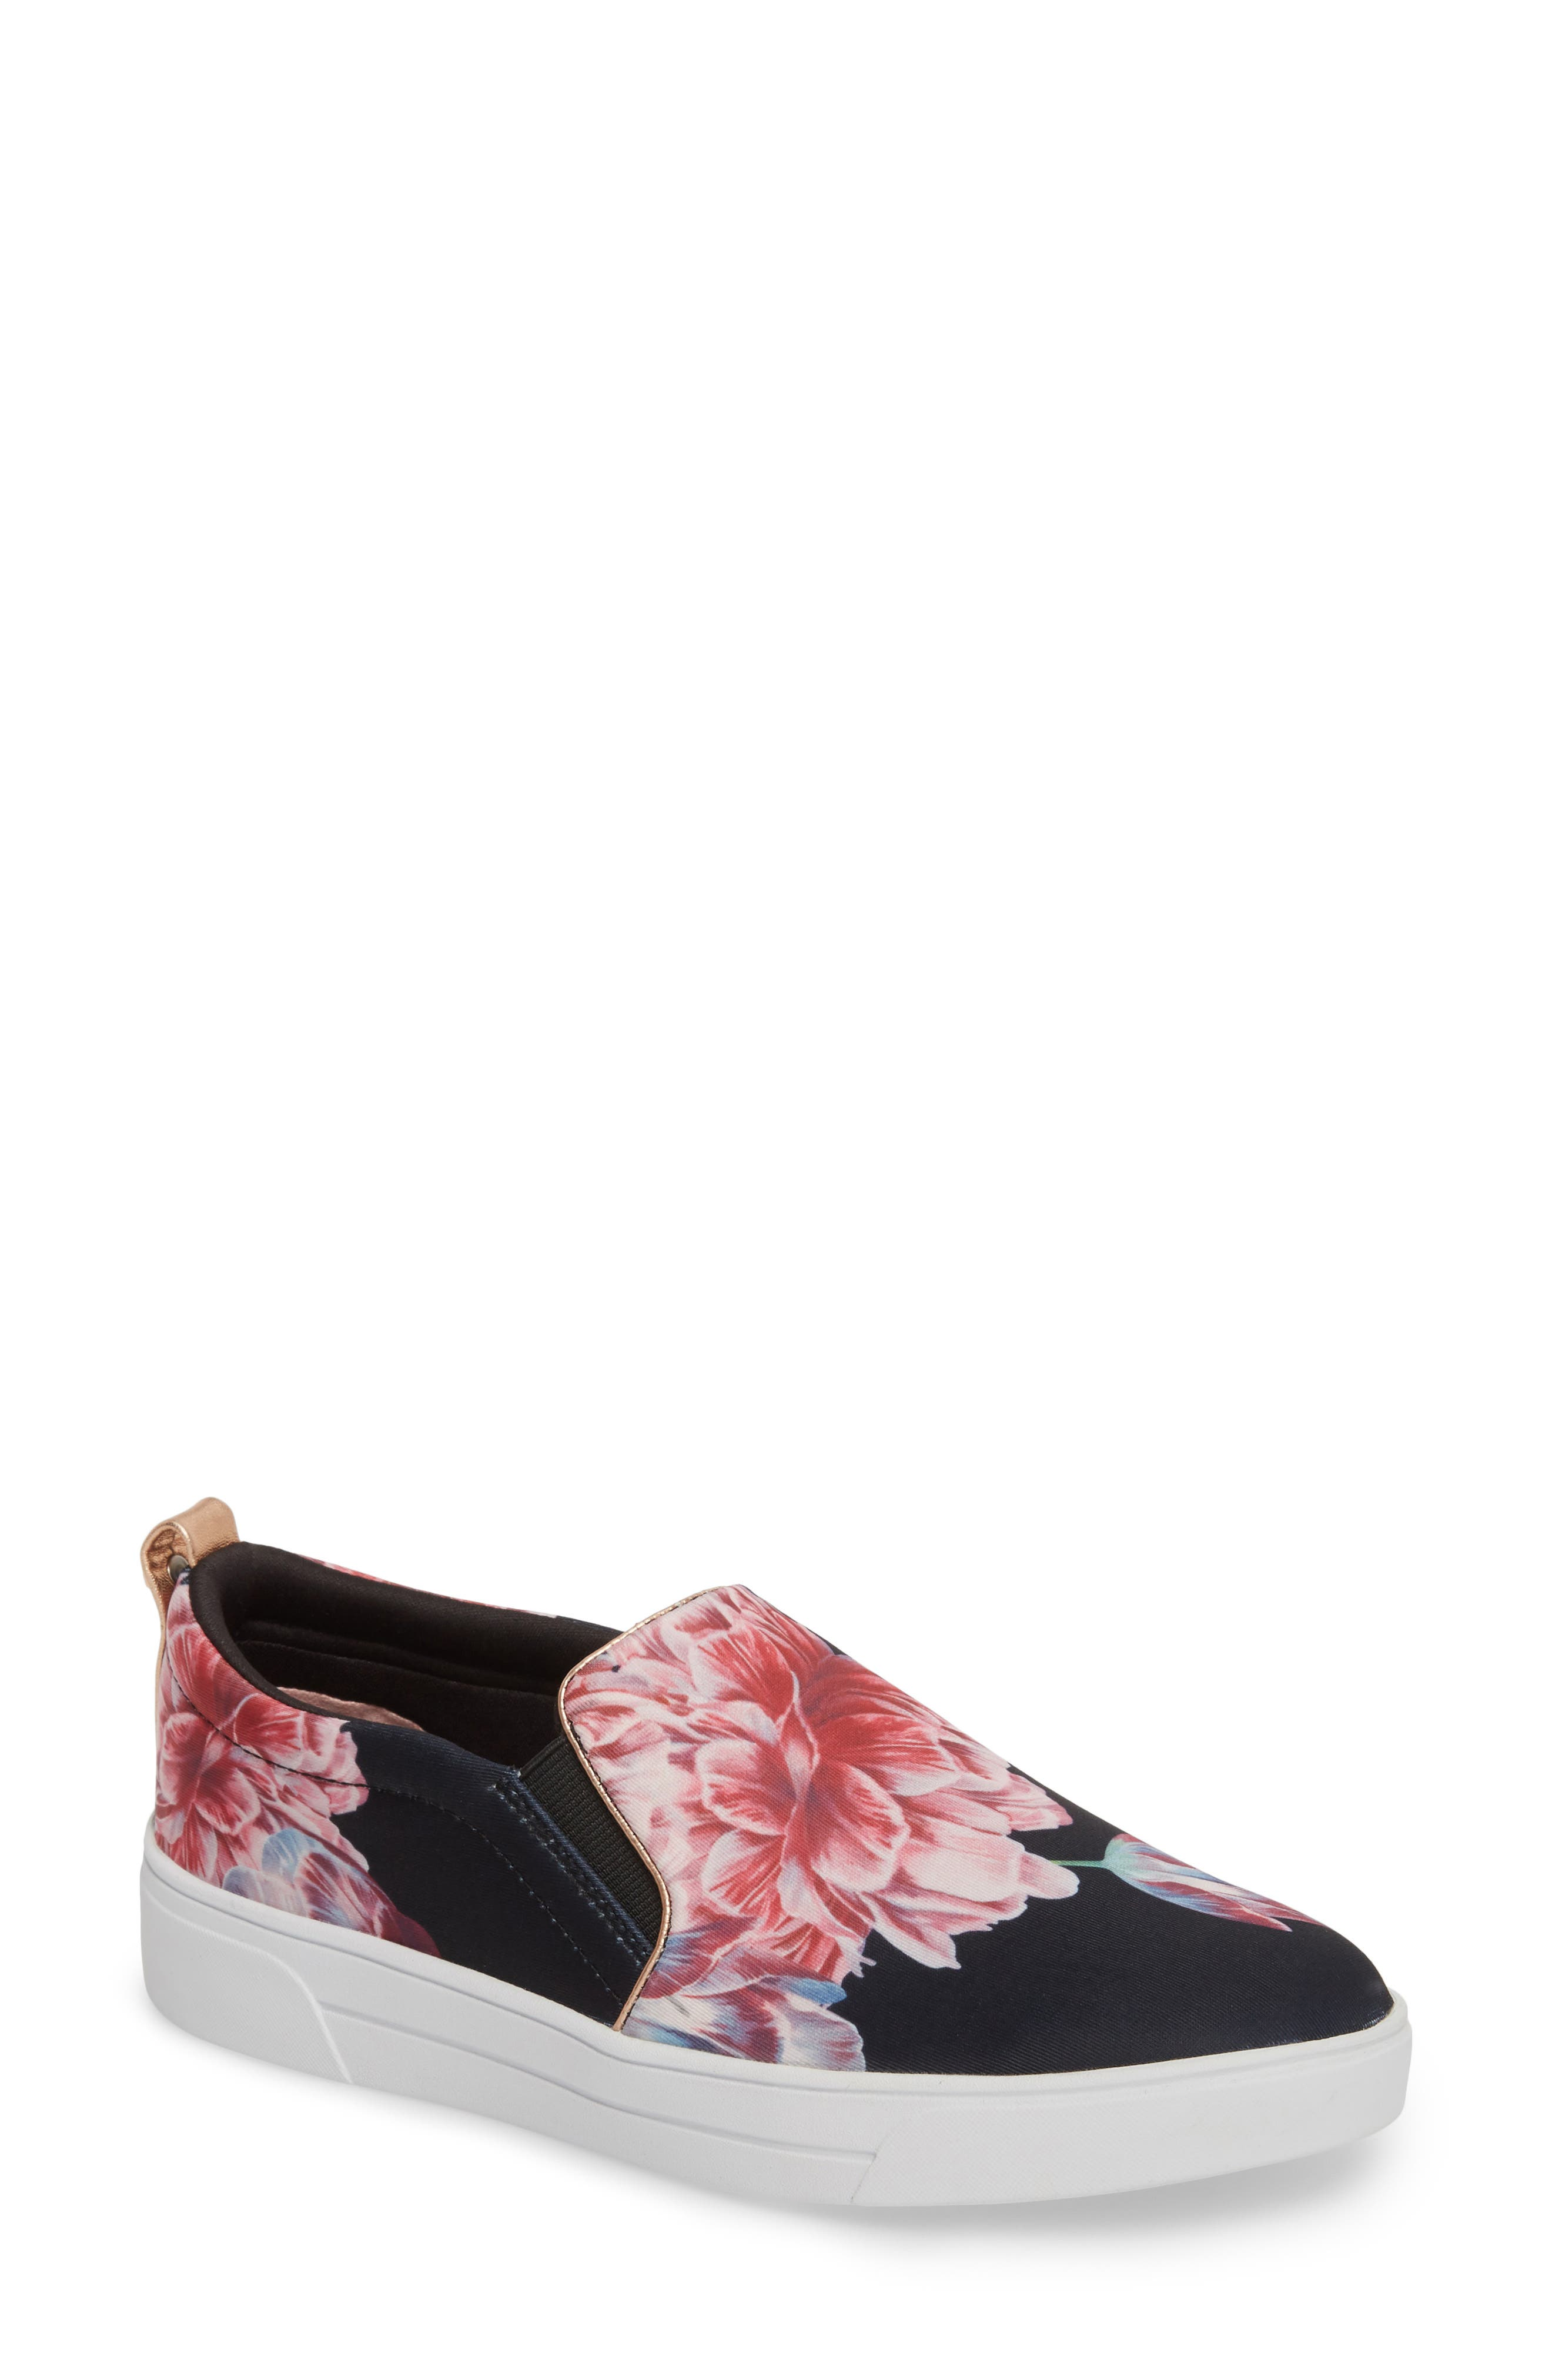 Tancey Slip-On Sneaker,                             Main thumbnail 1, color,                             BLACK TRANQUILITY FABRIC